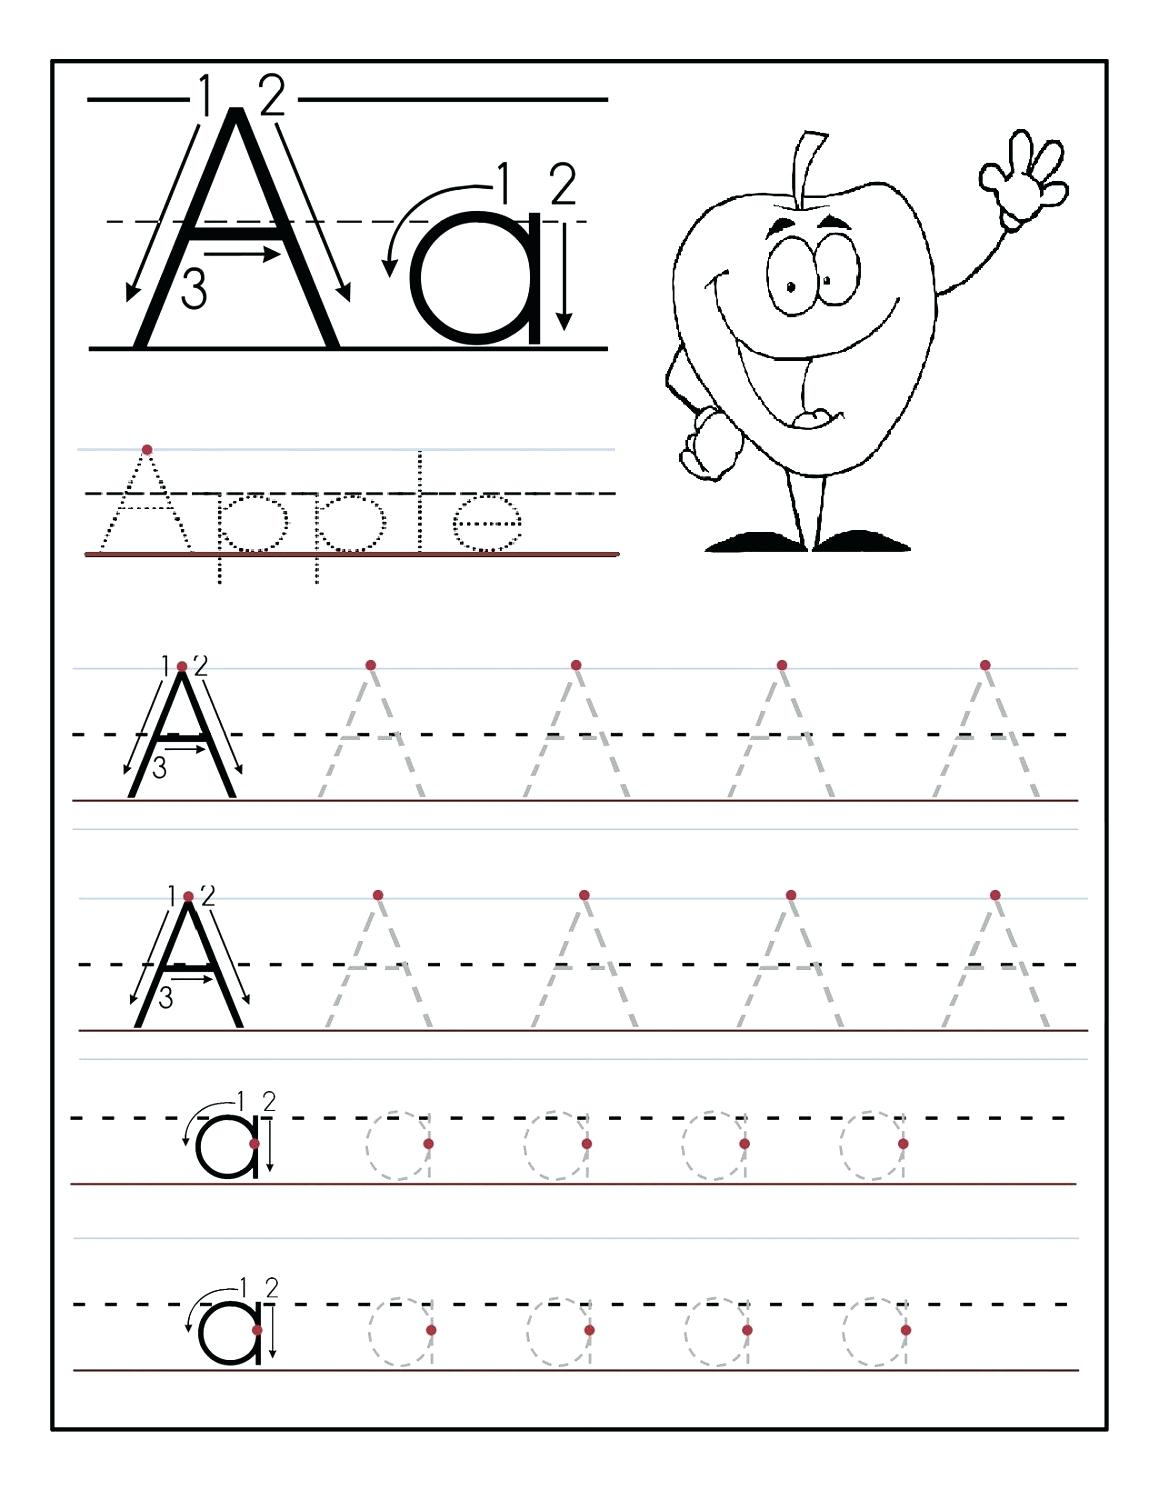 Coloring Book : Printablet Stencils Large Letters Free pertaining to Tracing Letters Of The Alphabet For Preschoolers